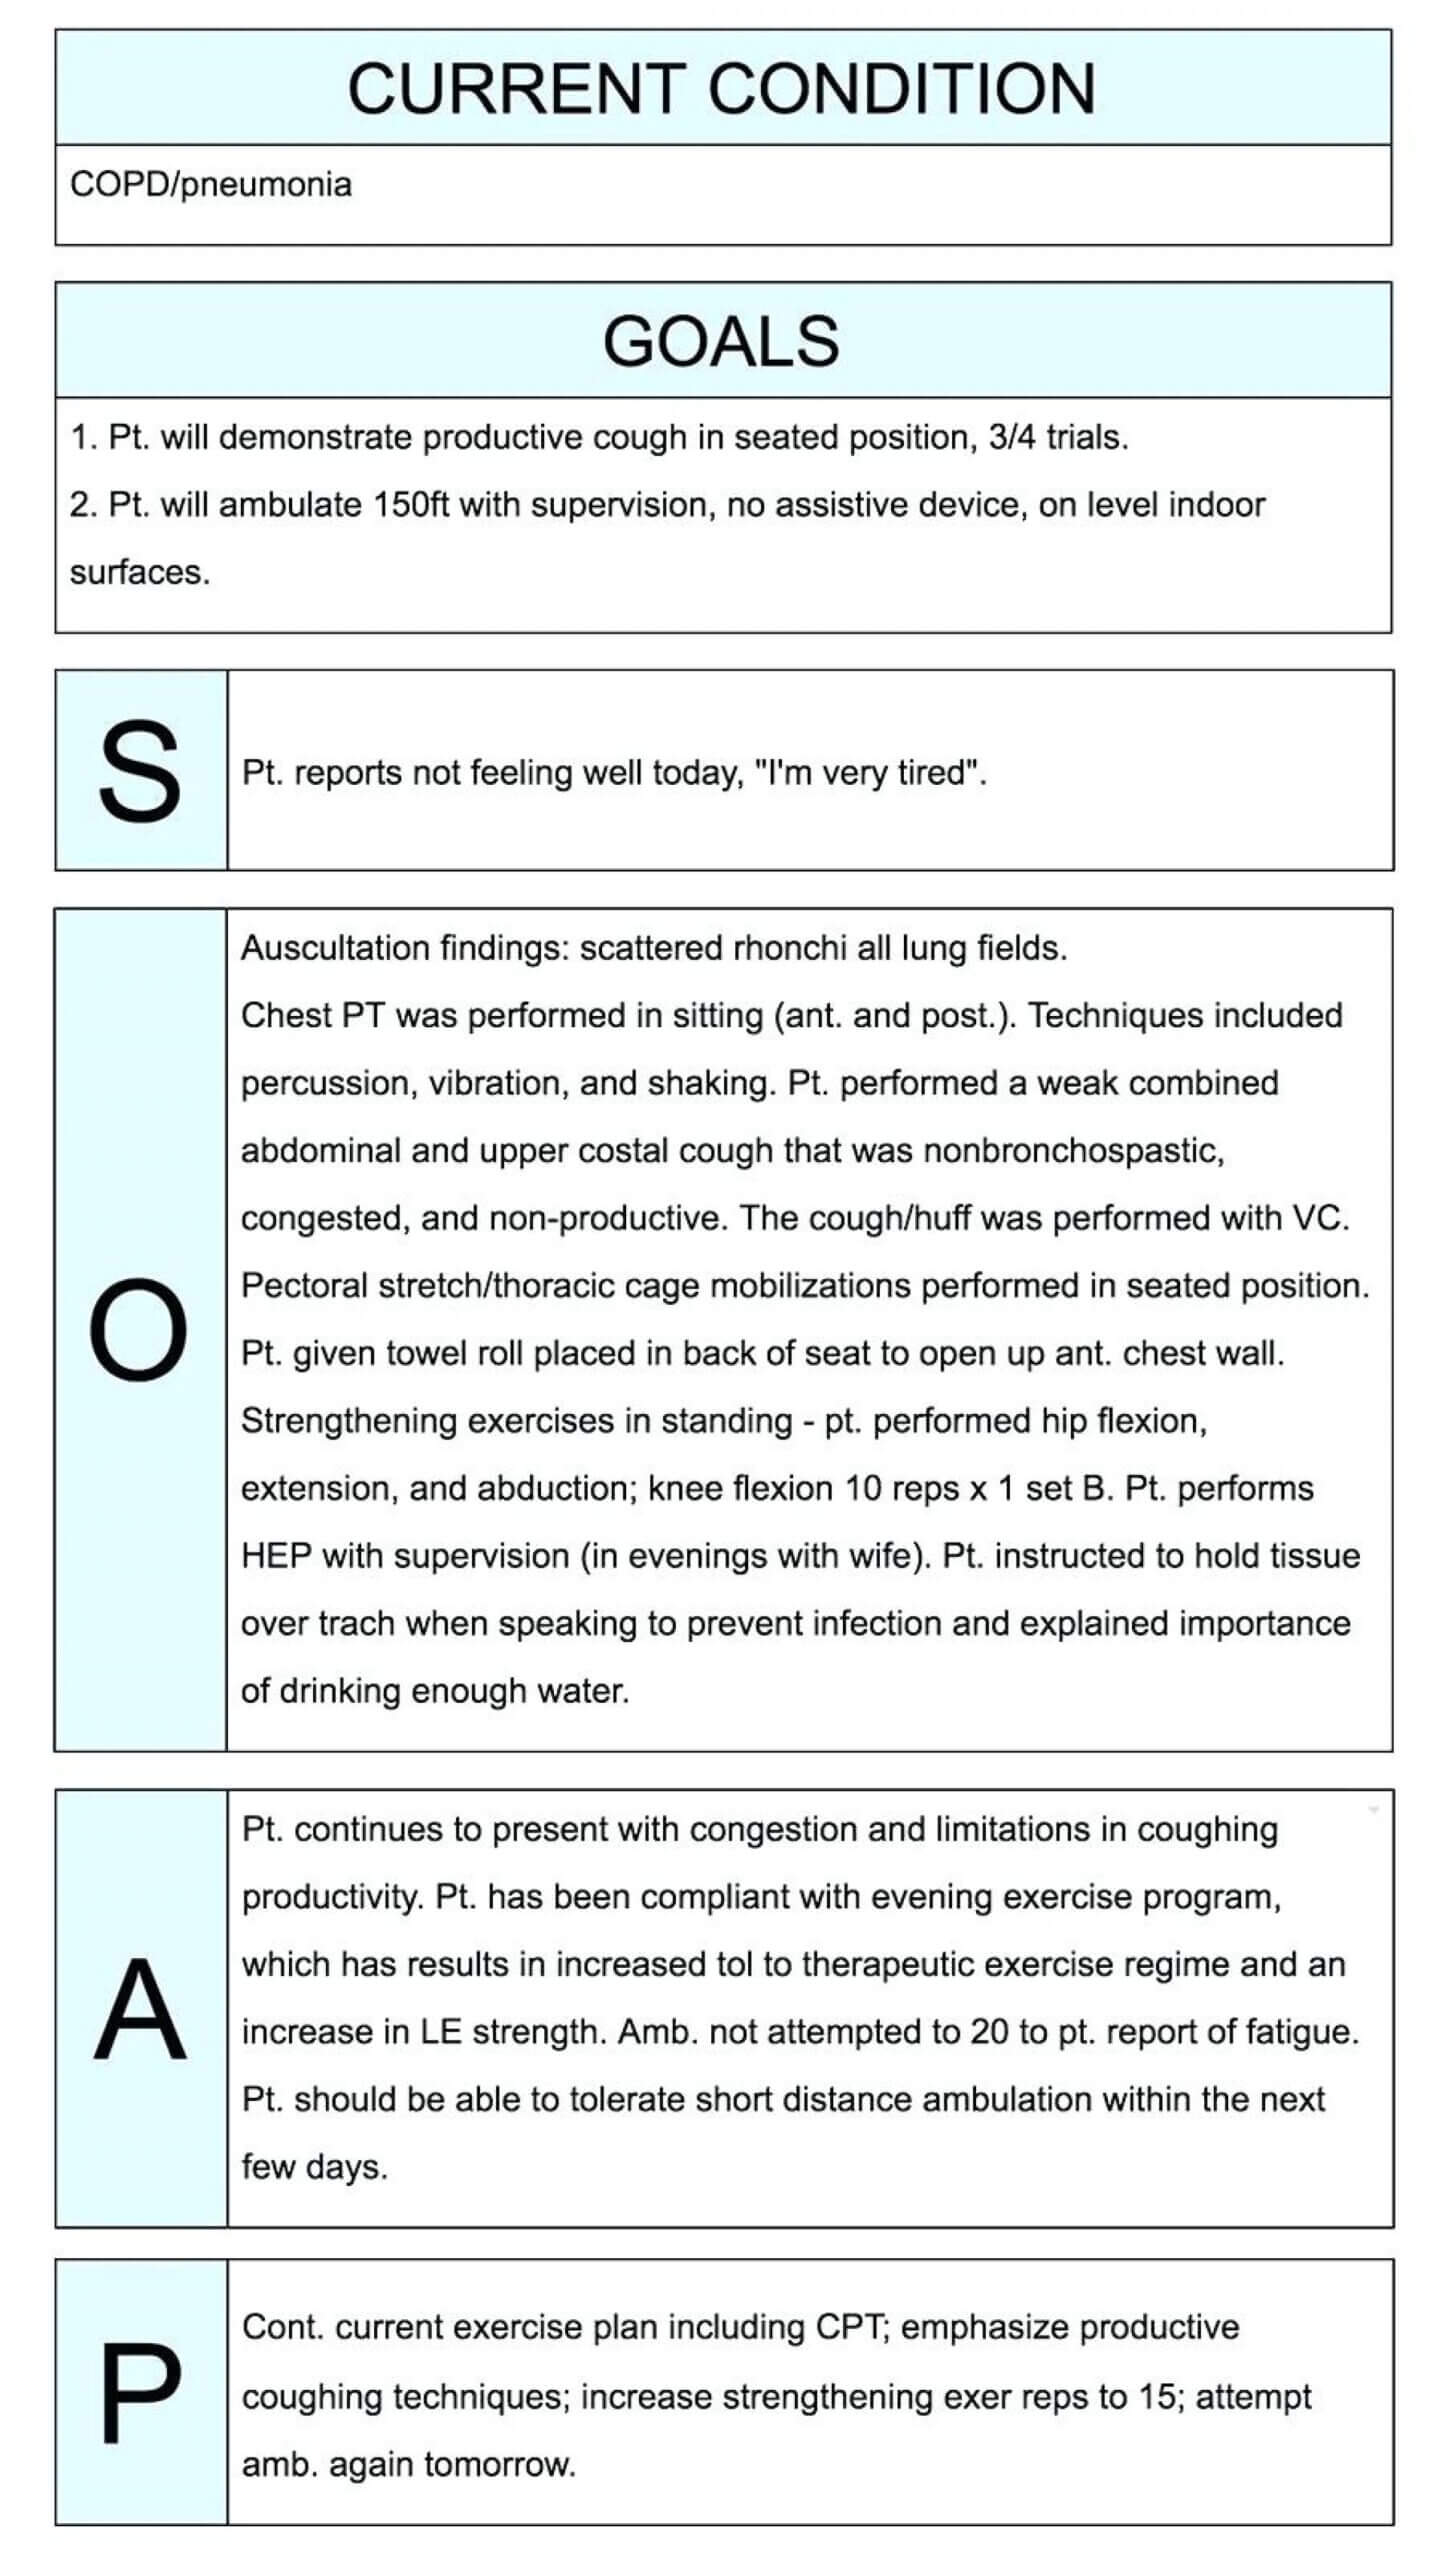 021 Soap Note Template Word Ideas Example Mental Health Ems With Blank Soap Note Template